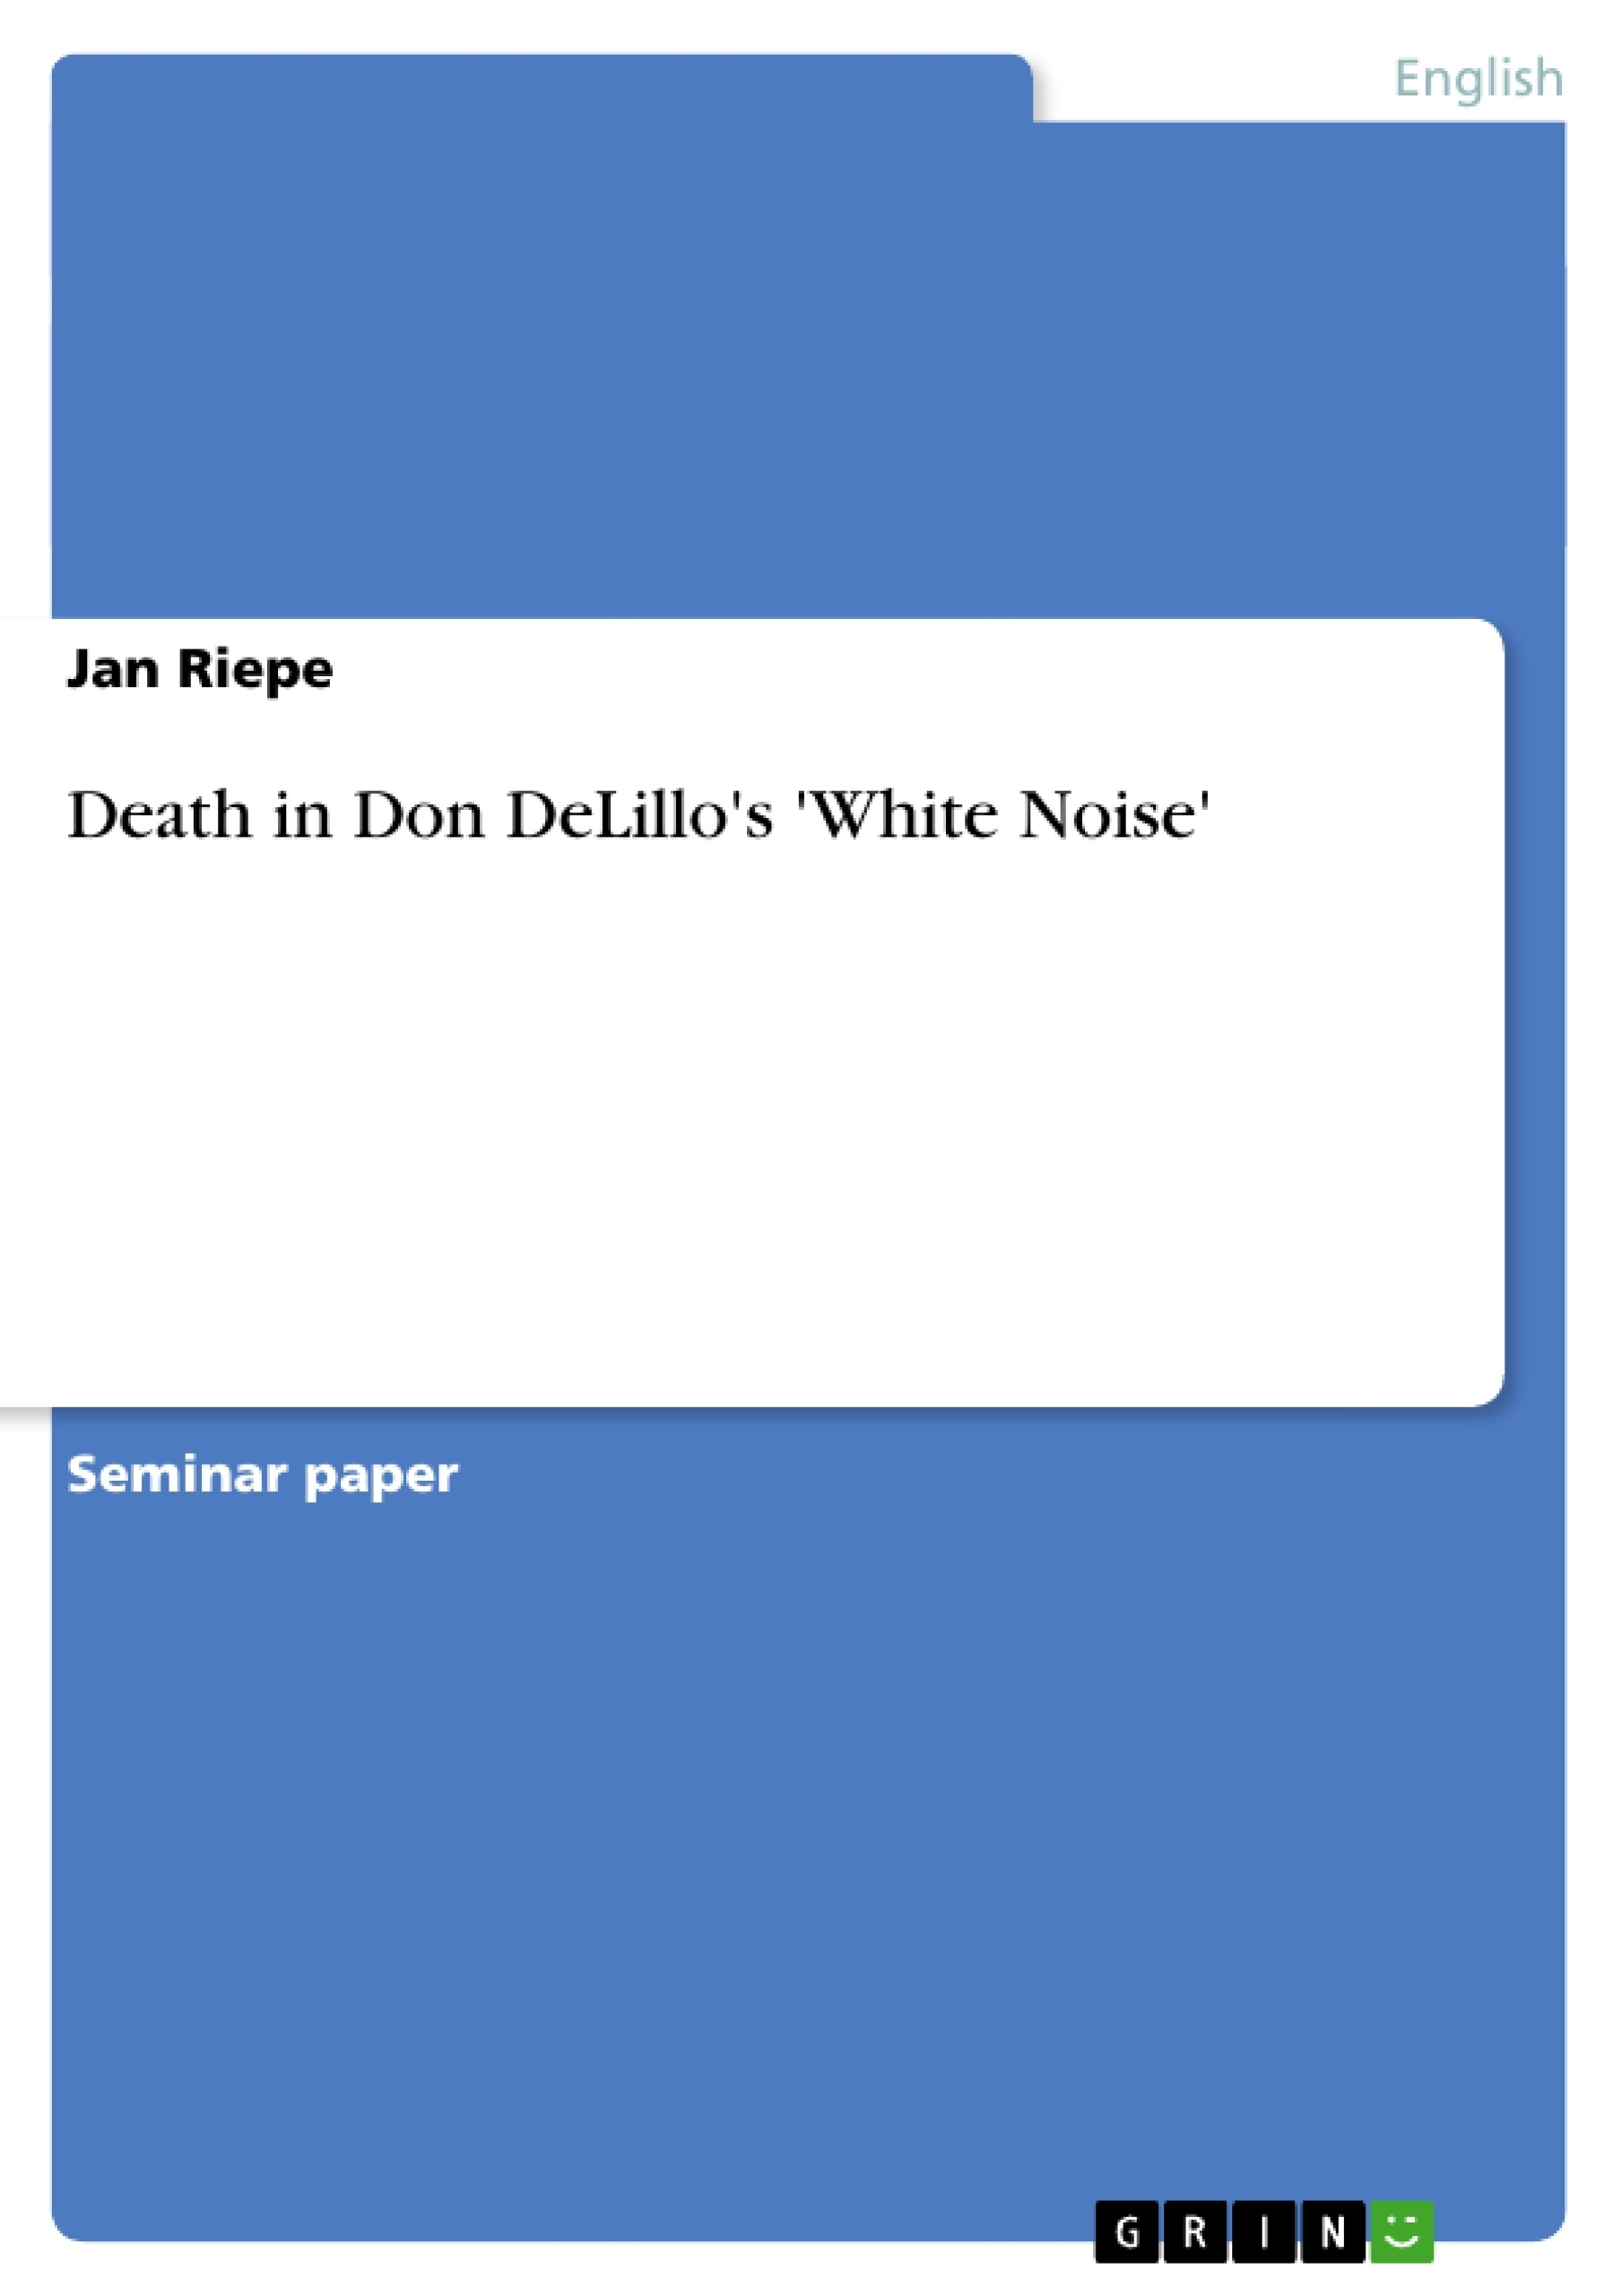 death in don delillo s white noise publish your master s death in don delillo s white noise publish your master s thesis bachelor s thesis essay or term paper